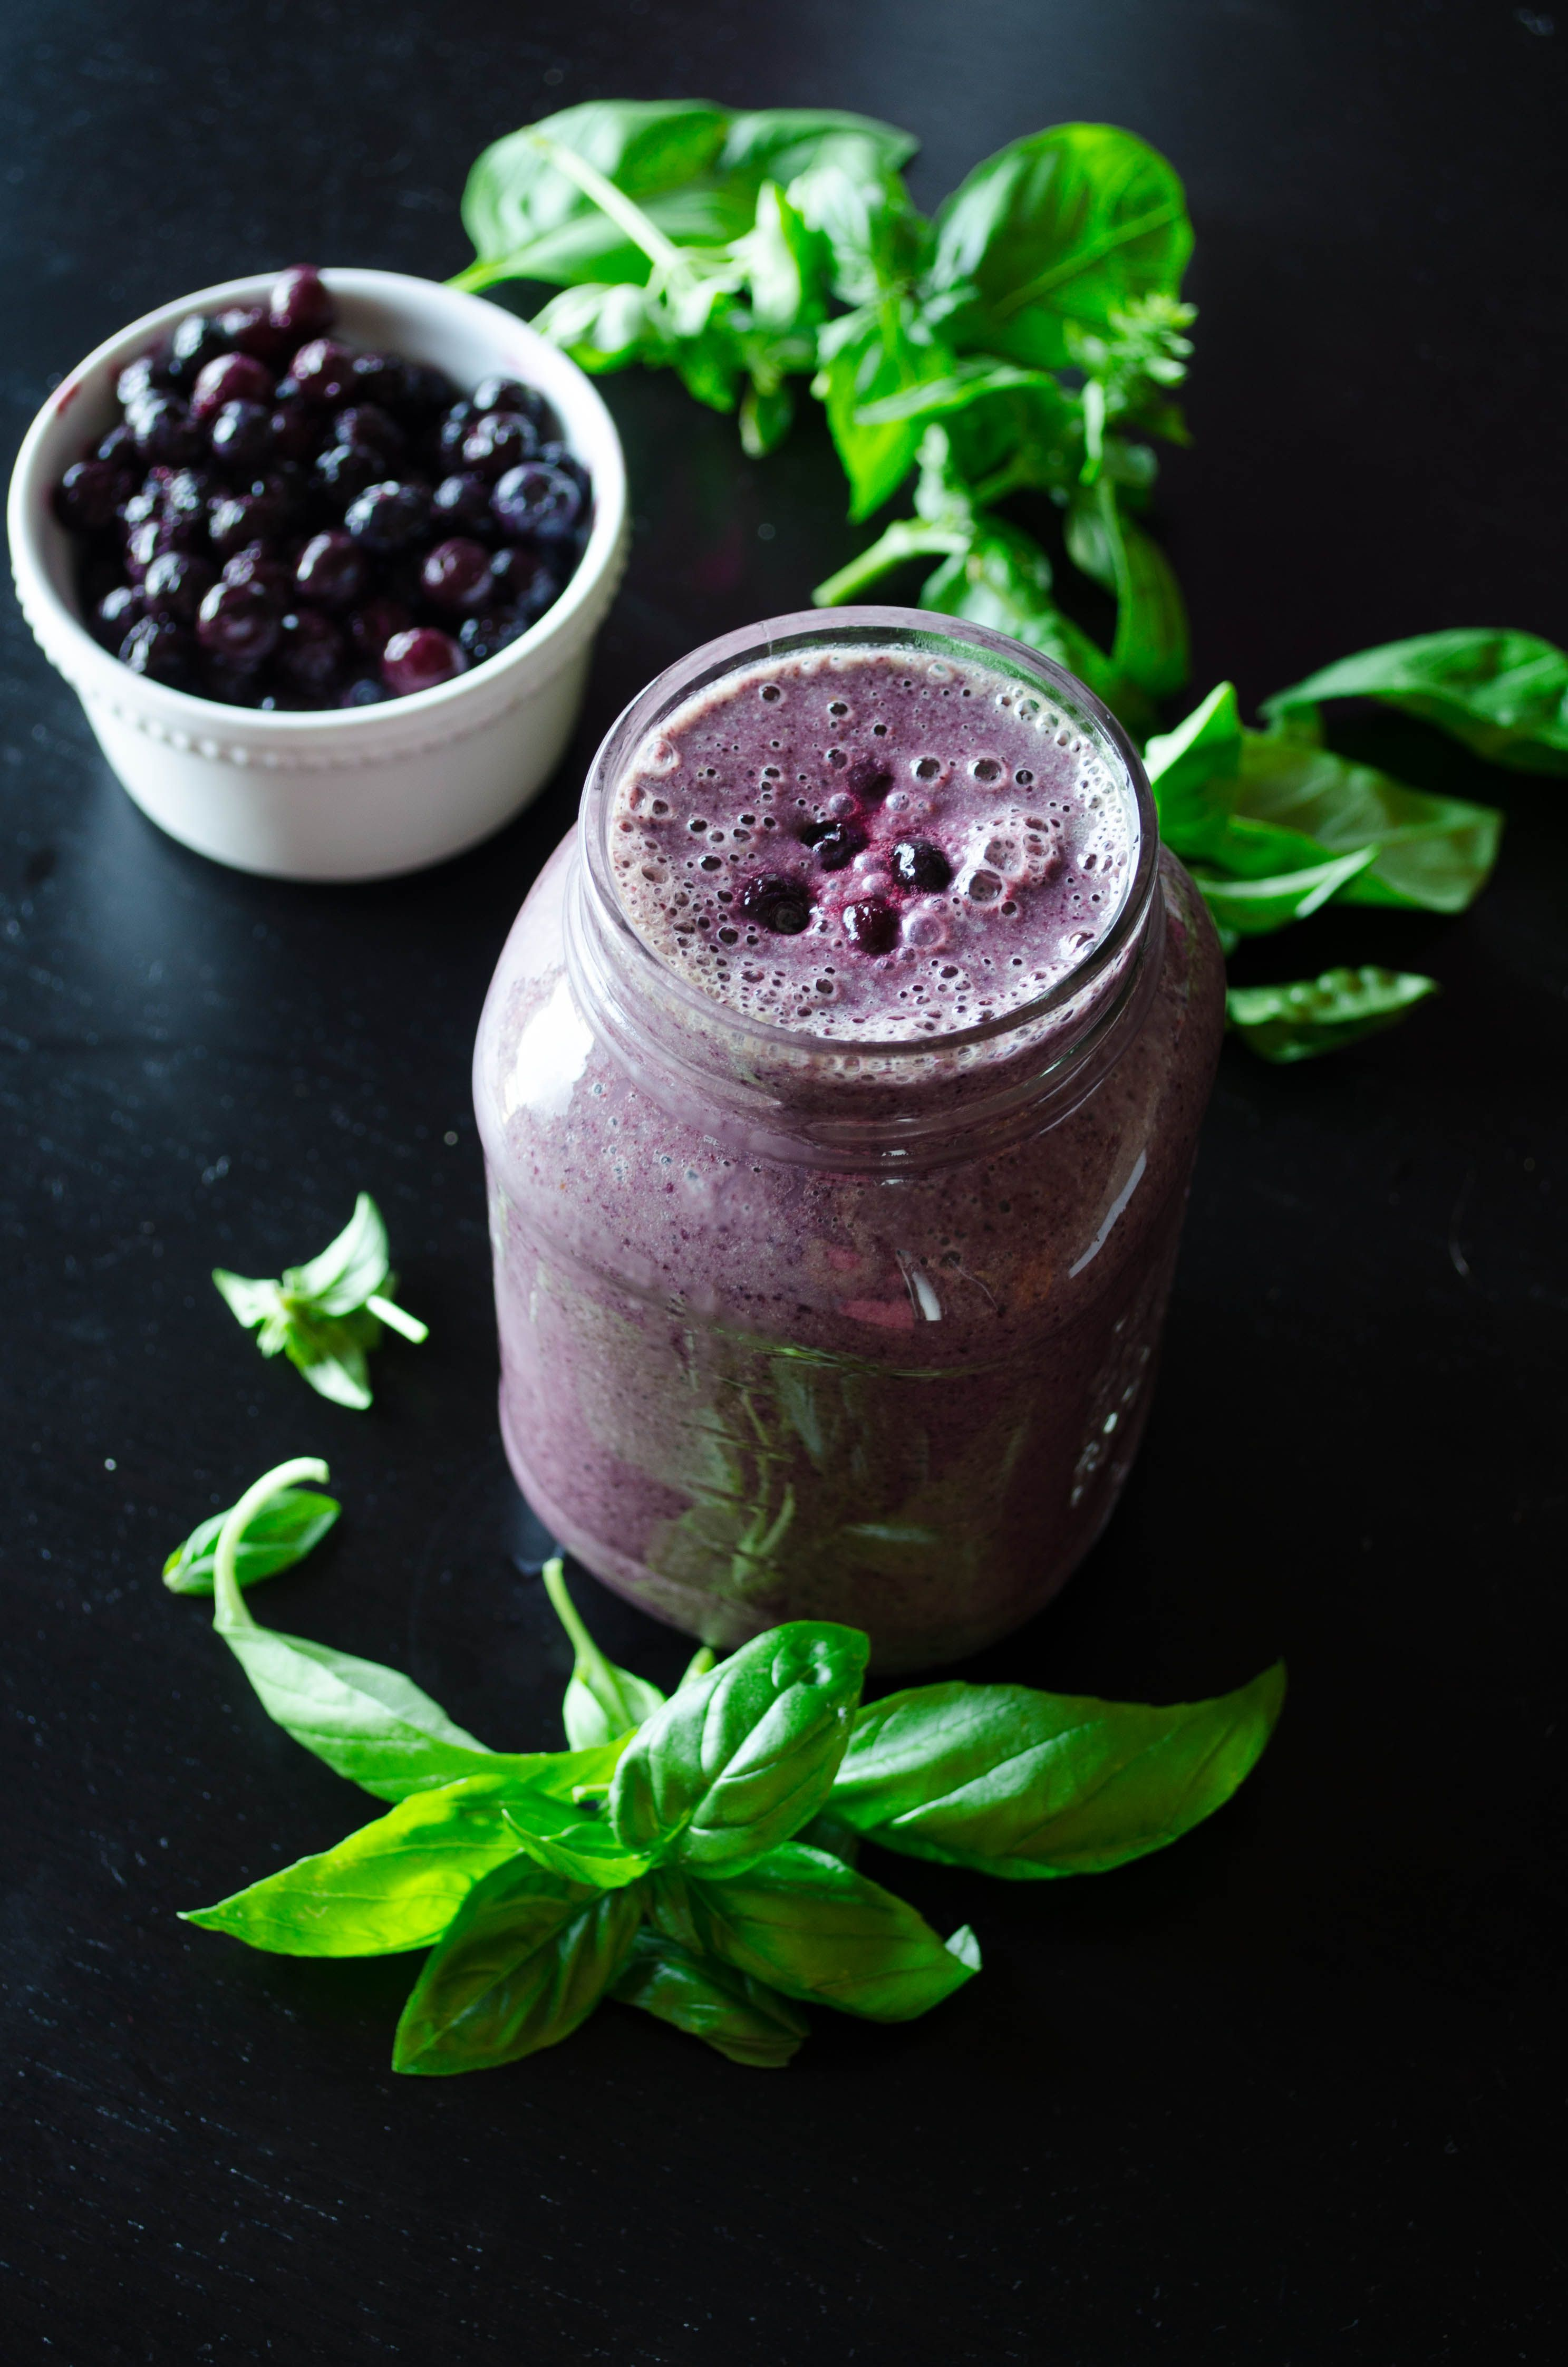 Blueberry basil smoothie an incredibly refreshing